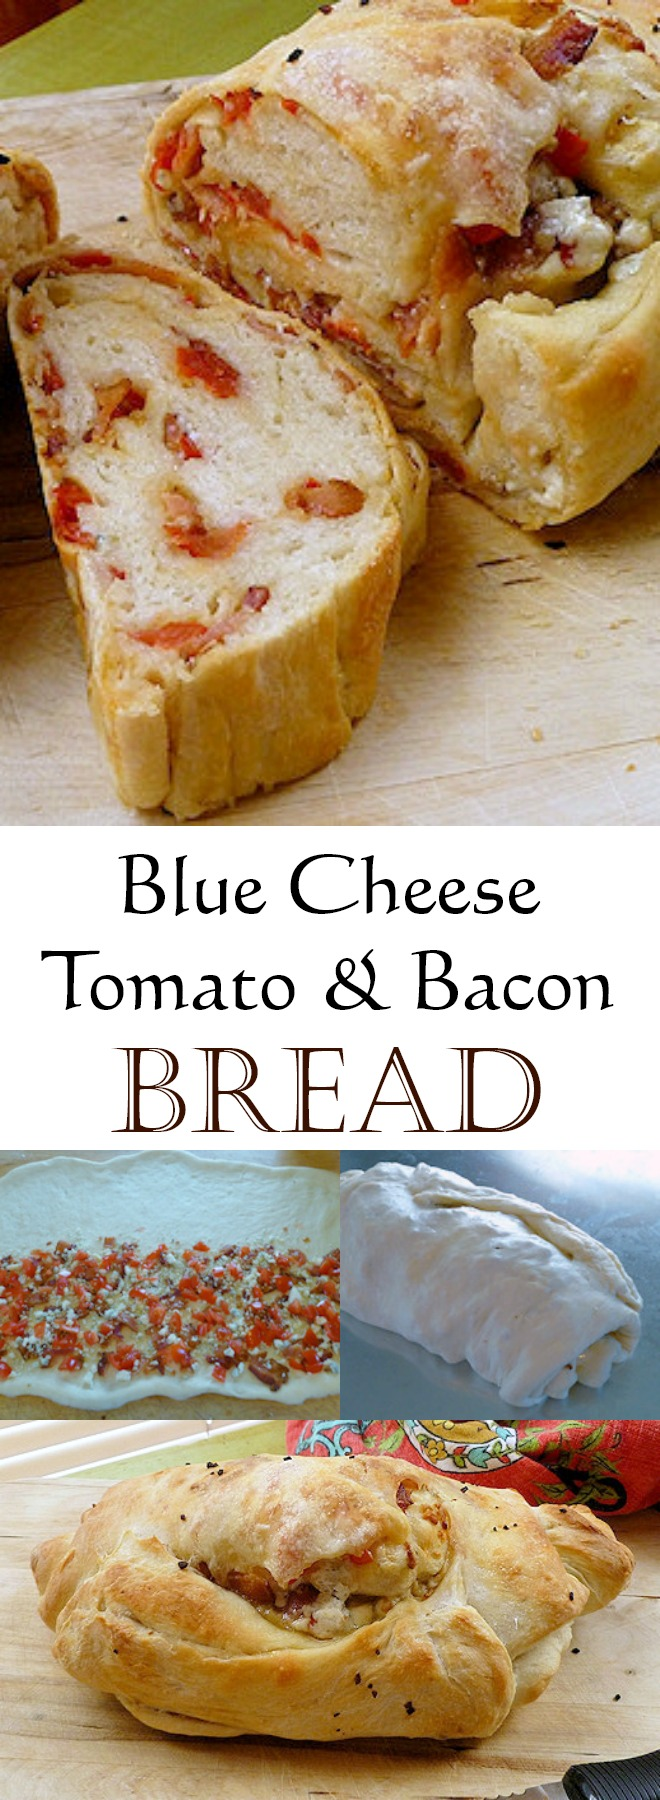 Blue Cheese Tomato Bacon Bread Recipe